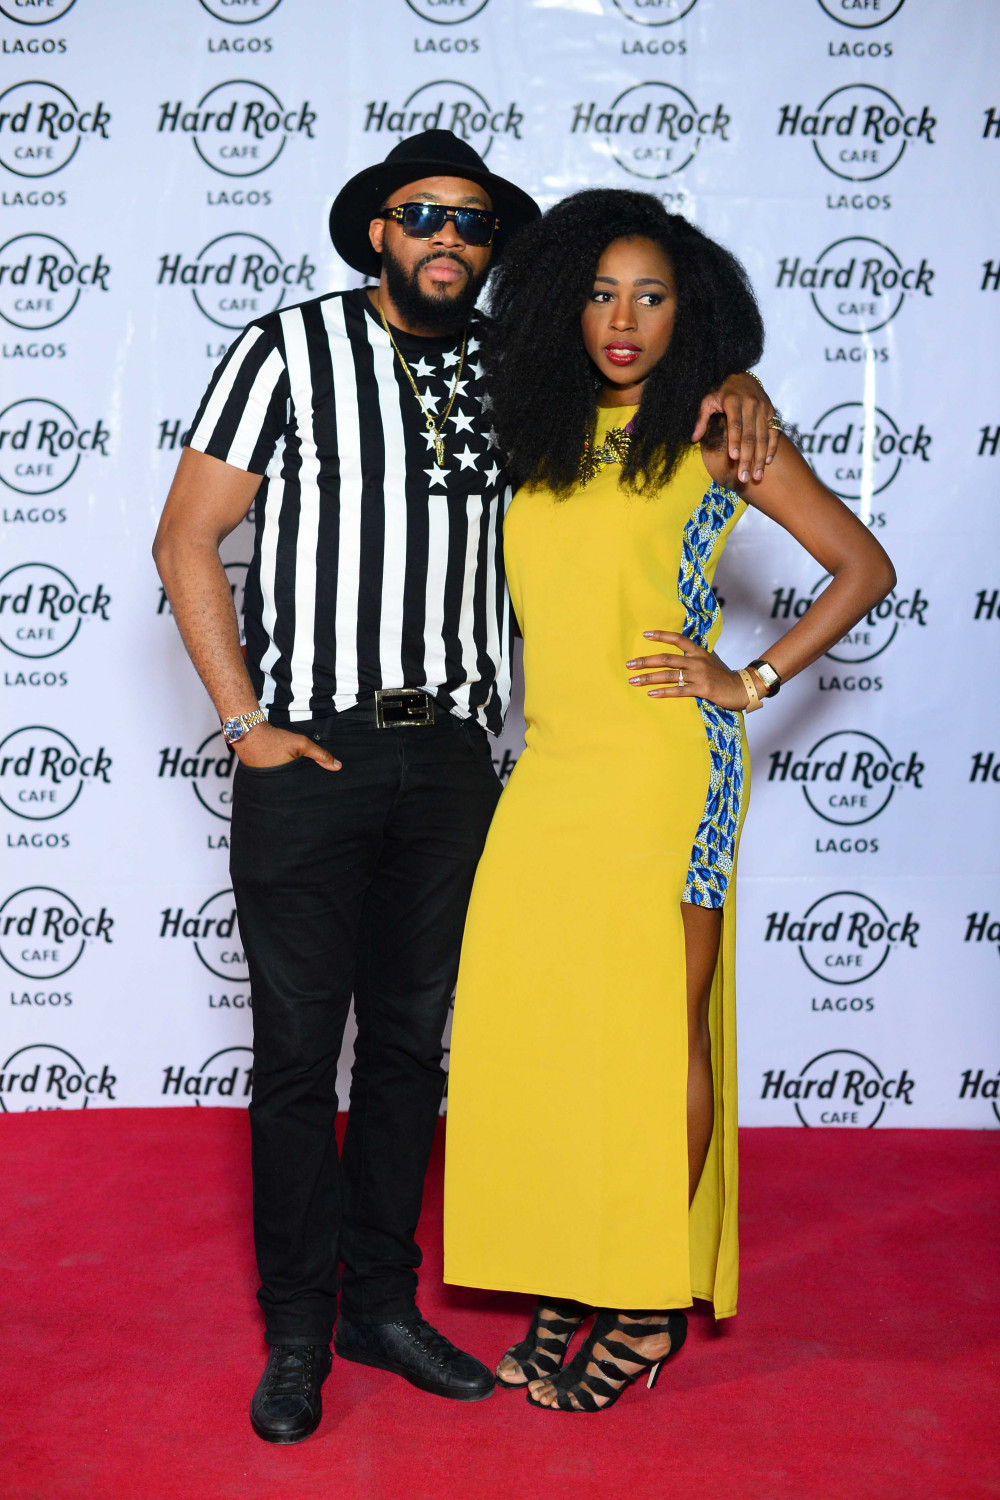 Hard Rock Cafe Lagos Launch BellaNaija fashionable couple